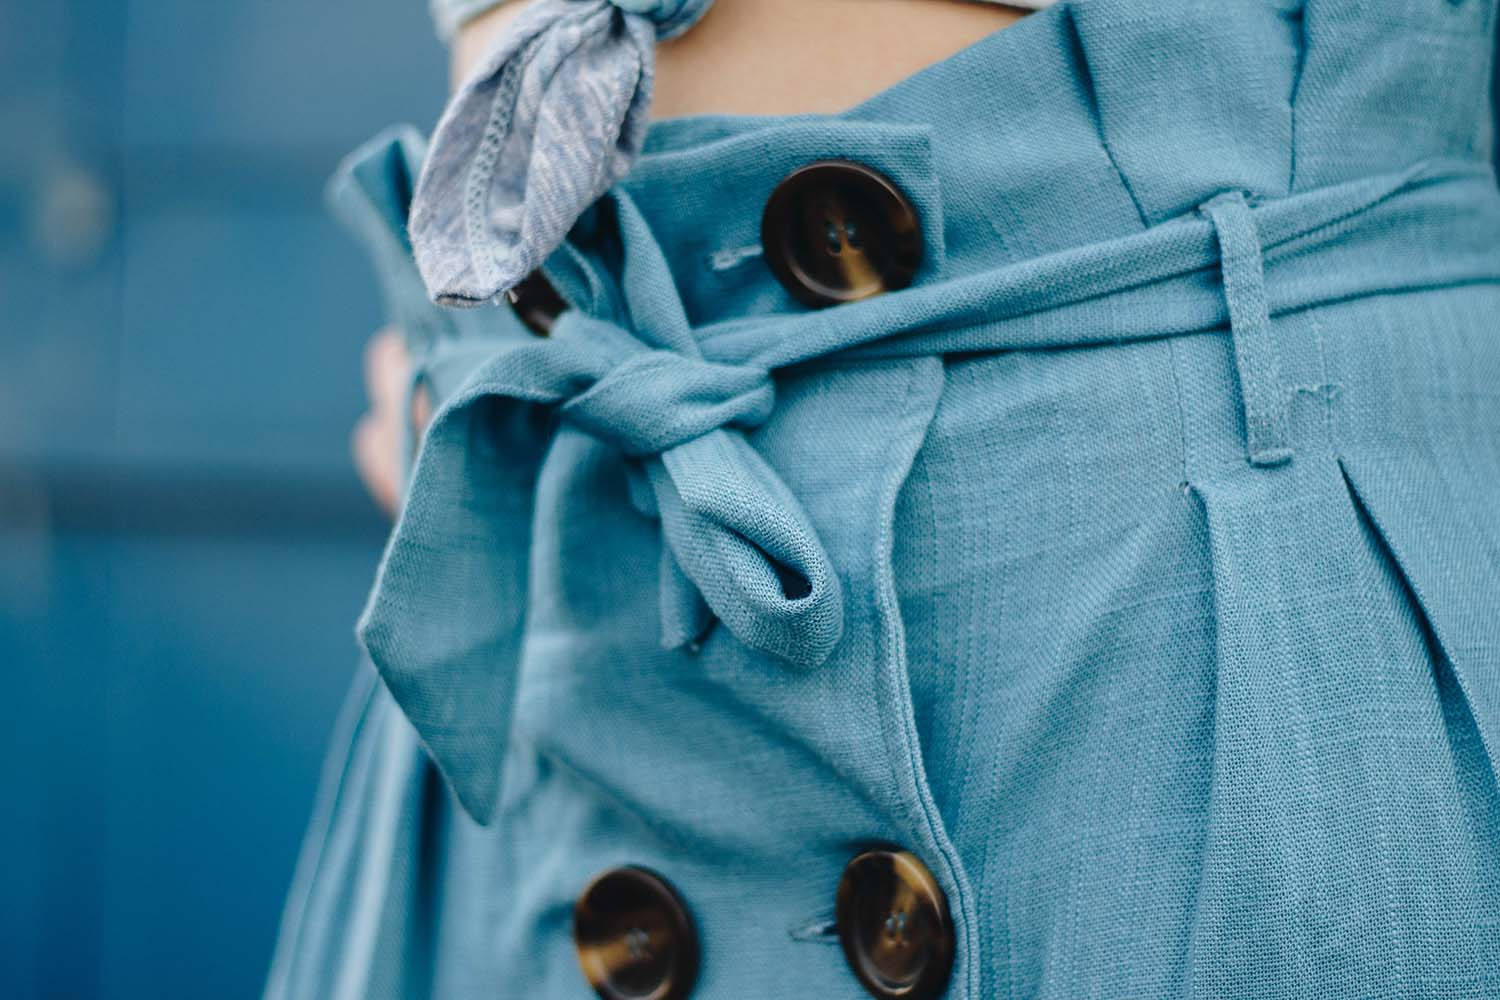 Draped in Linen: From Linen Chinos to Linen Dresses, Fashion Tips for the Summer